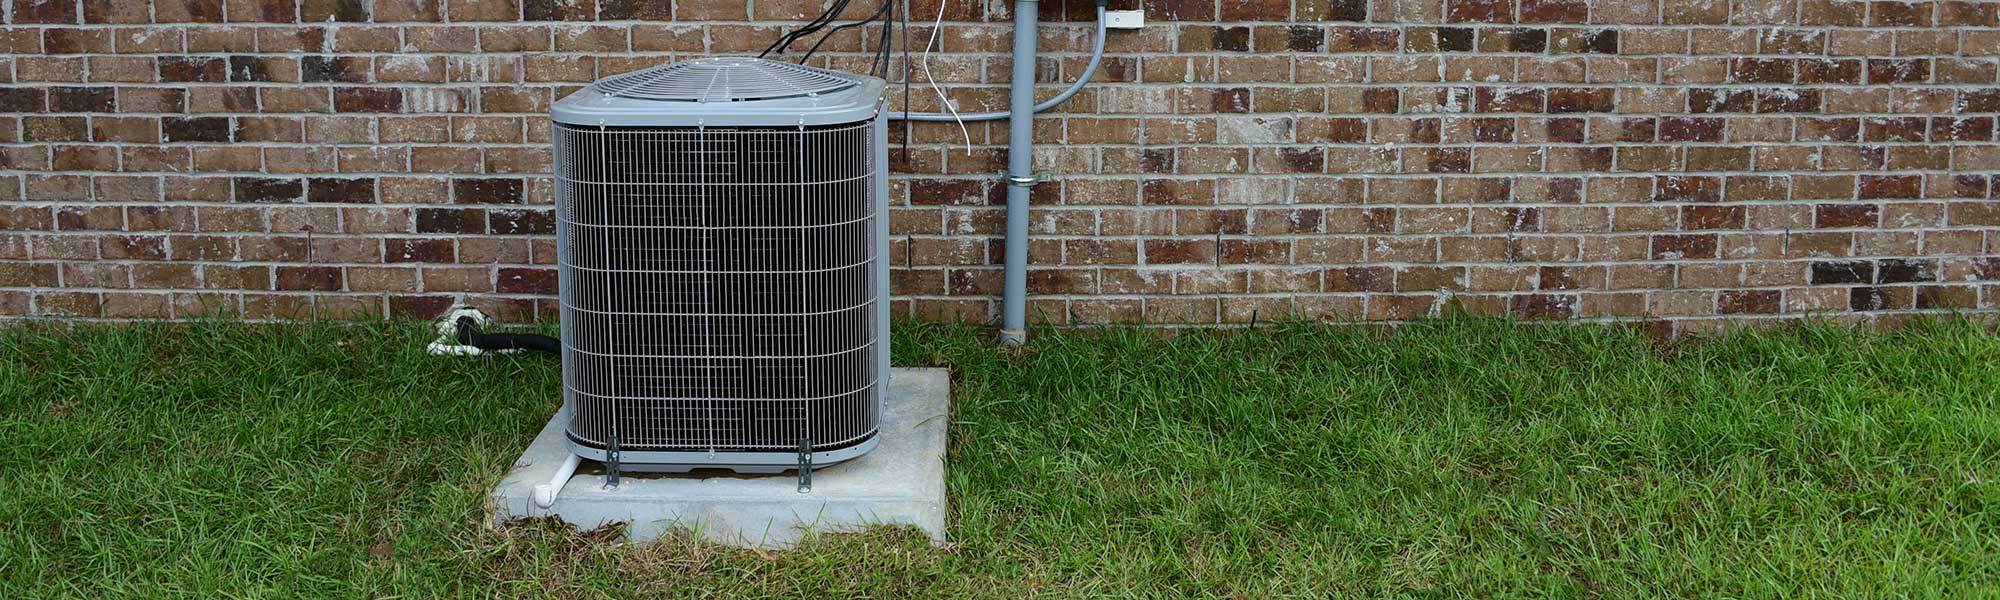 Friendly A/C & Heating Services is the most trusted heating and air conditioning contractor in Frankston, Texas. With over 15 years in the heating and air business you can trust us to make sure your next heating or air condition job is done correctly the first time.